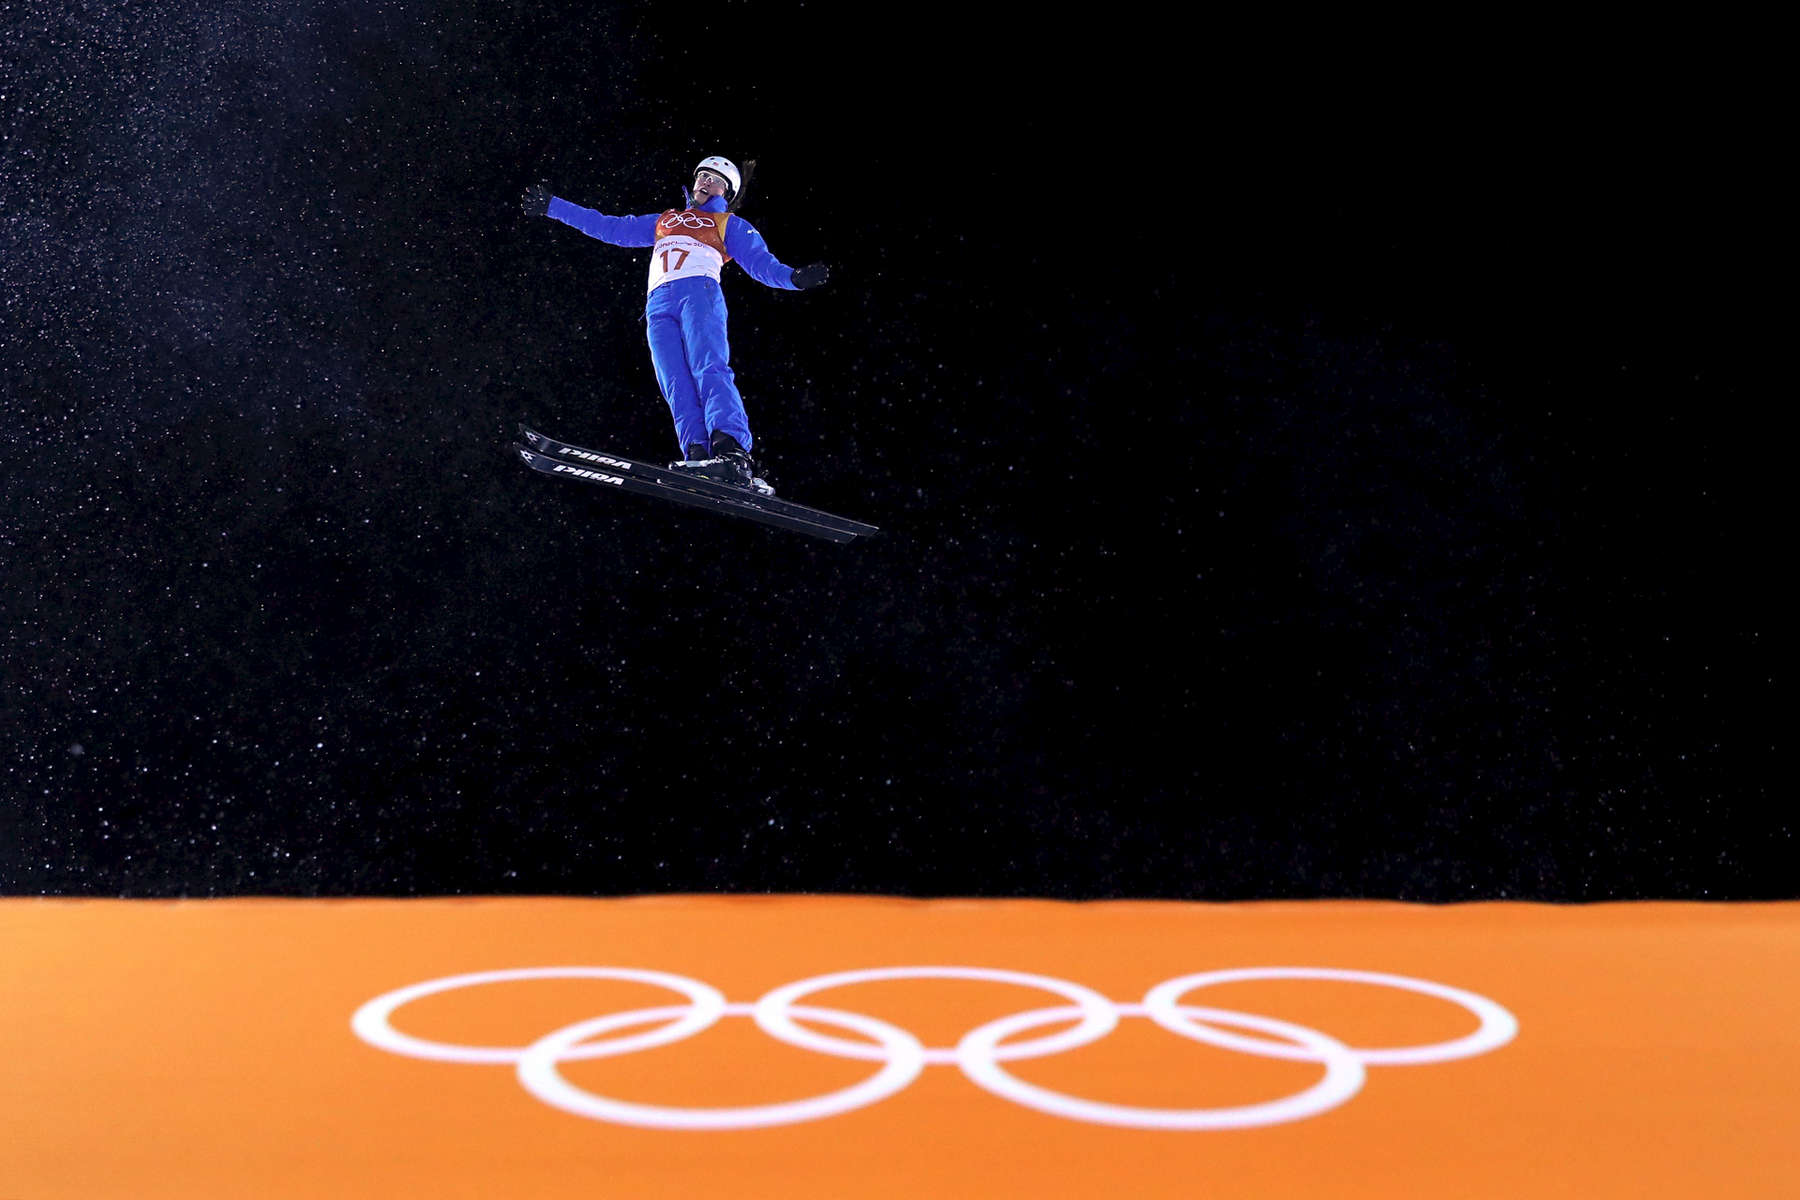 Madison Olsen of the United States warms up ahead of the Freestyle Skiing Ladies' Aerials Final on day seven of the PyeongChang 2018 Winter Olympic Games at Phoenix Snow Park on February 16, 2018 in Pyeongchang-gun, South Korea.